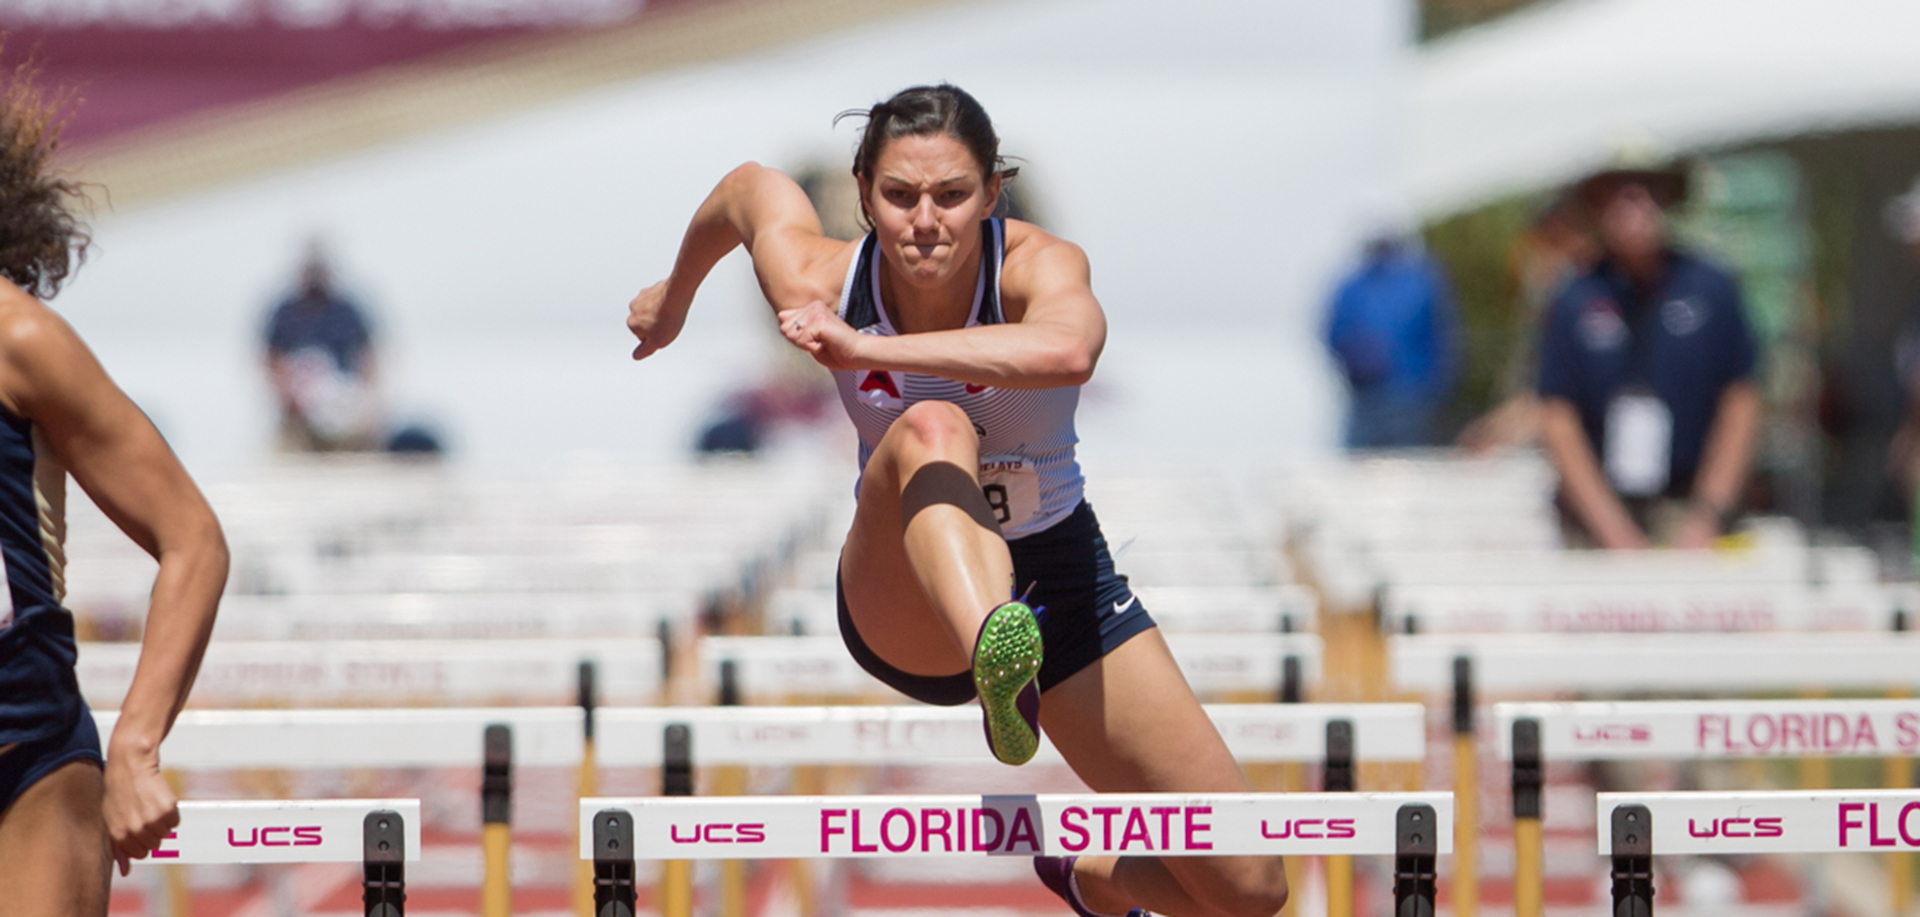 Kylie Polsgrove wrapped up a heptathlon personal-best score of 5,184 points, Saturday at the Virginia Challenge.